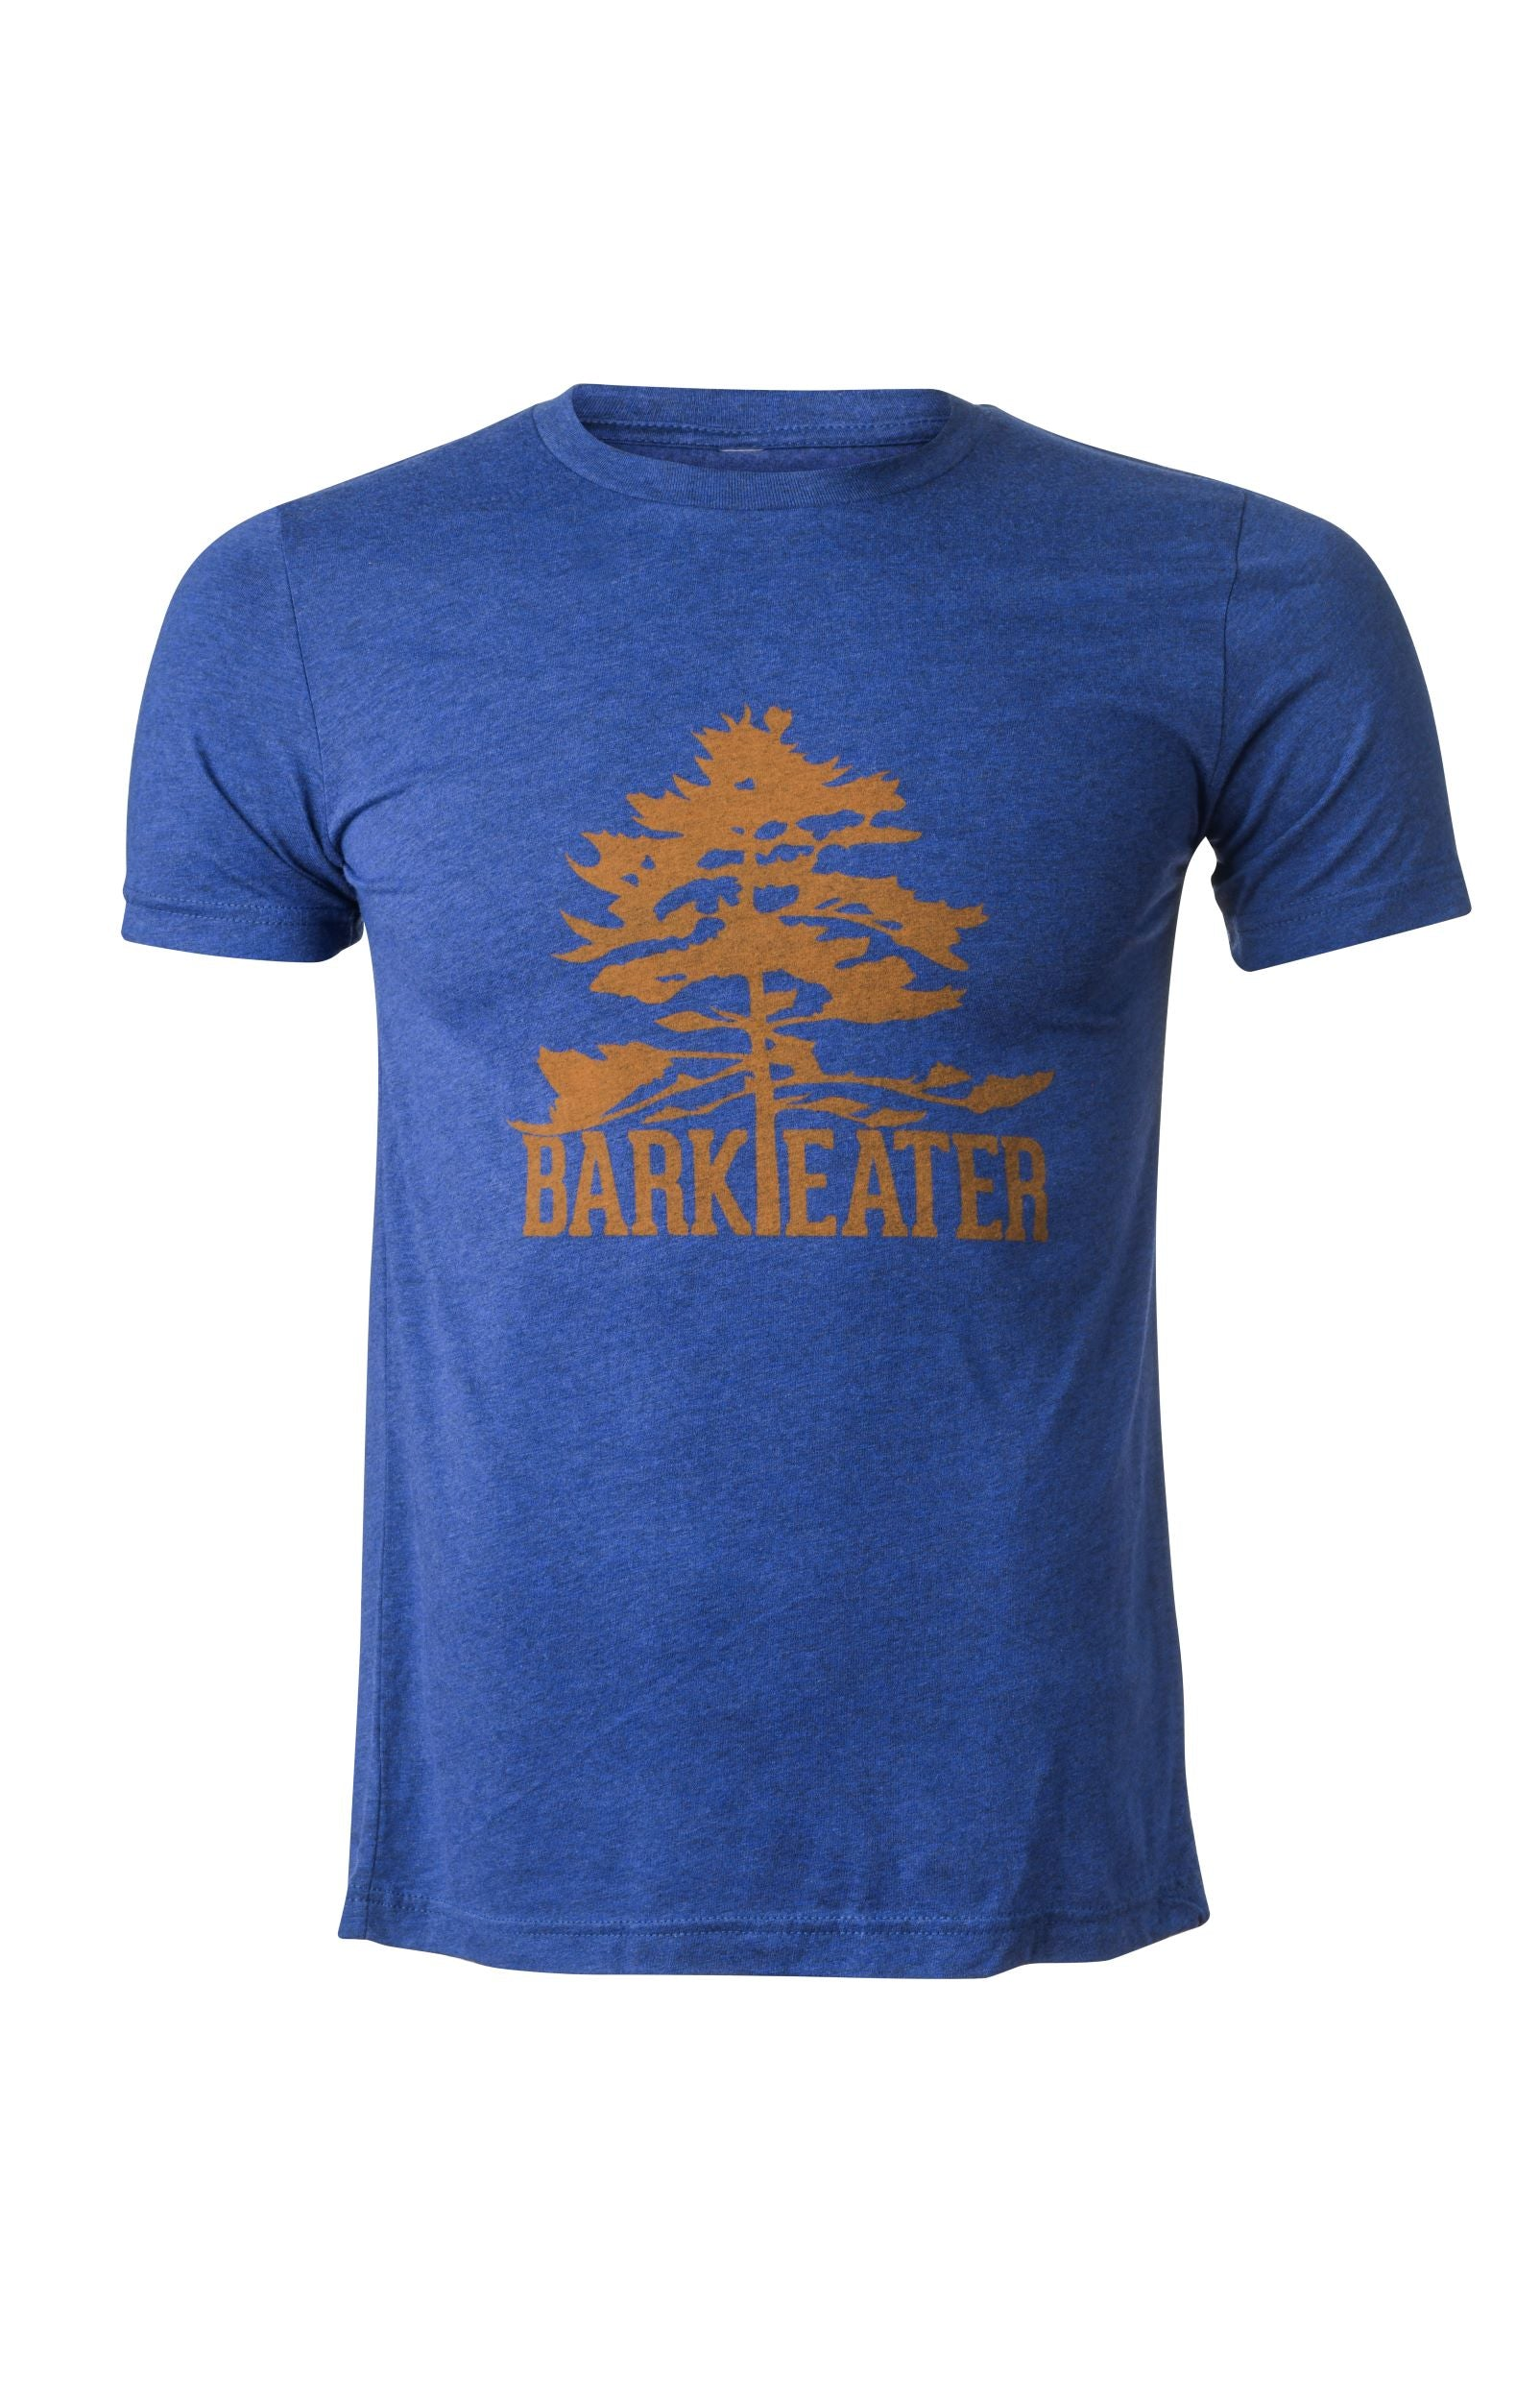 The Bark Eater Tee - Kid's T-Shirt